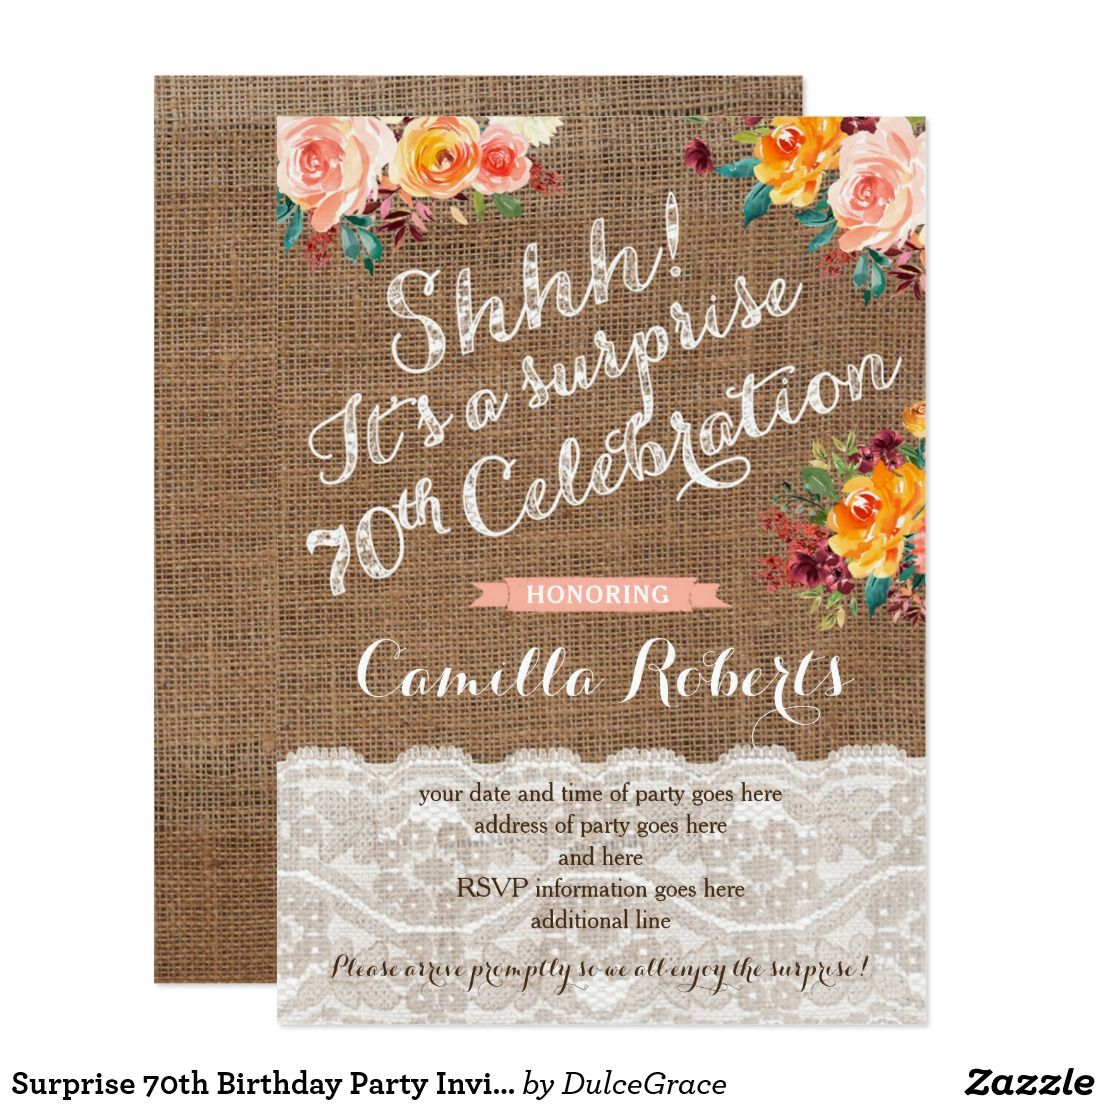 Surprise 70th Birthday Party Invitations for Fall 70 birthday